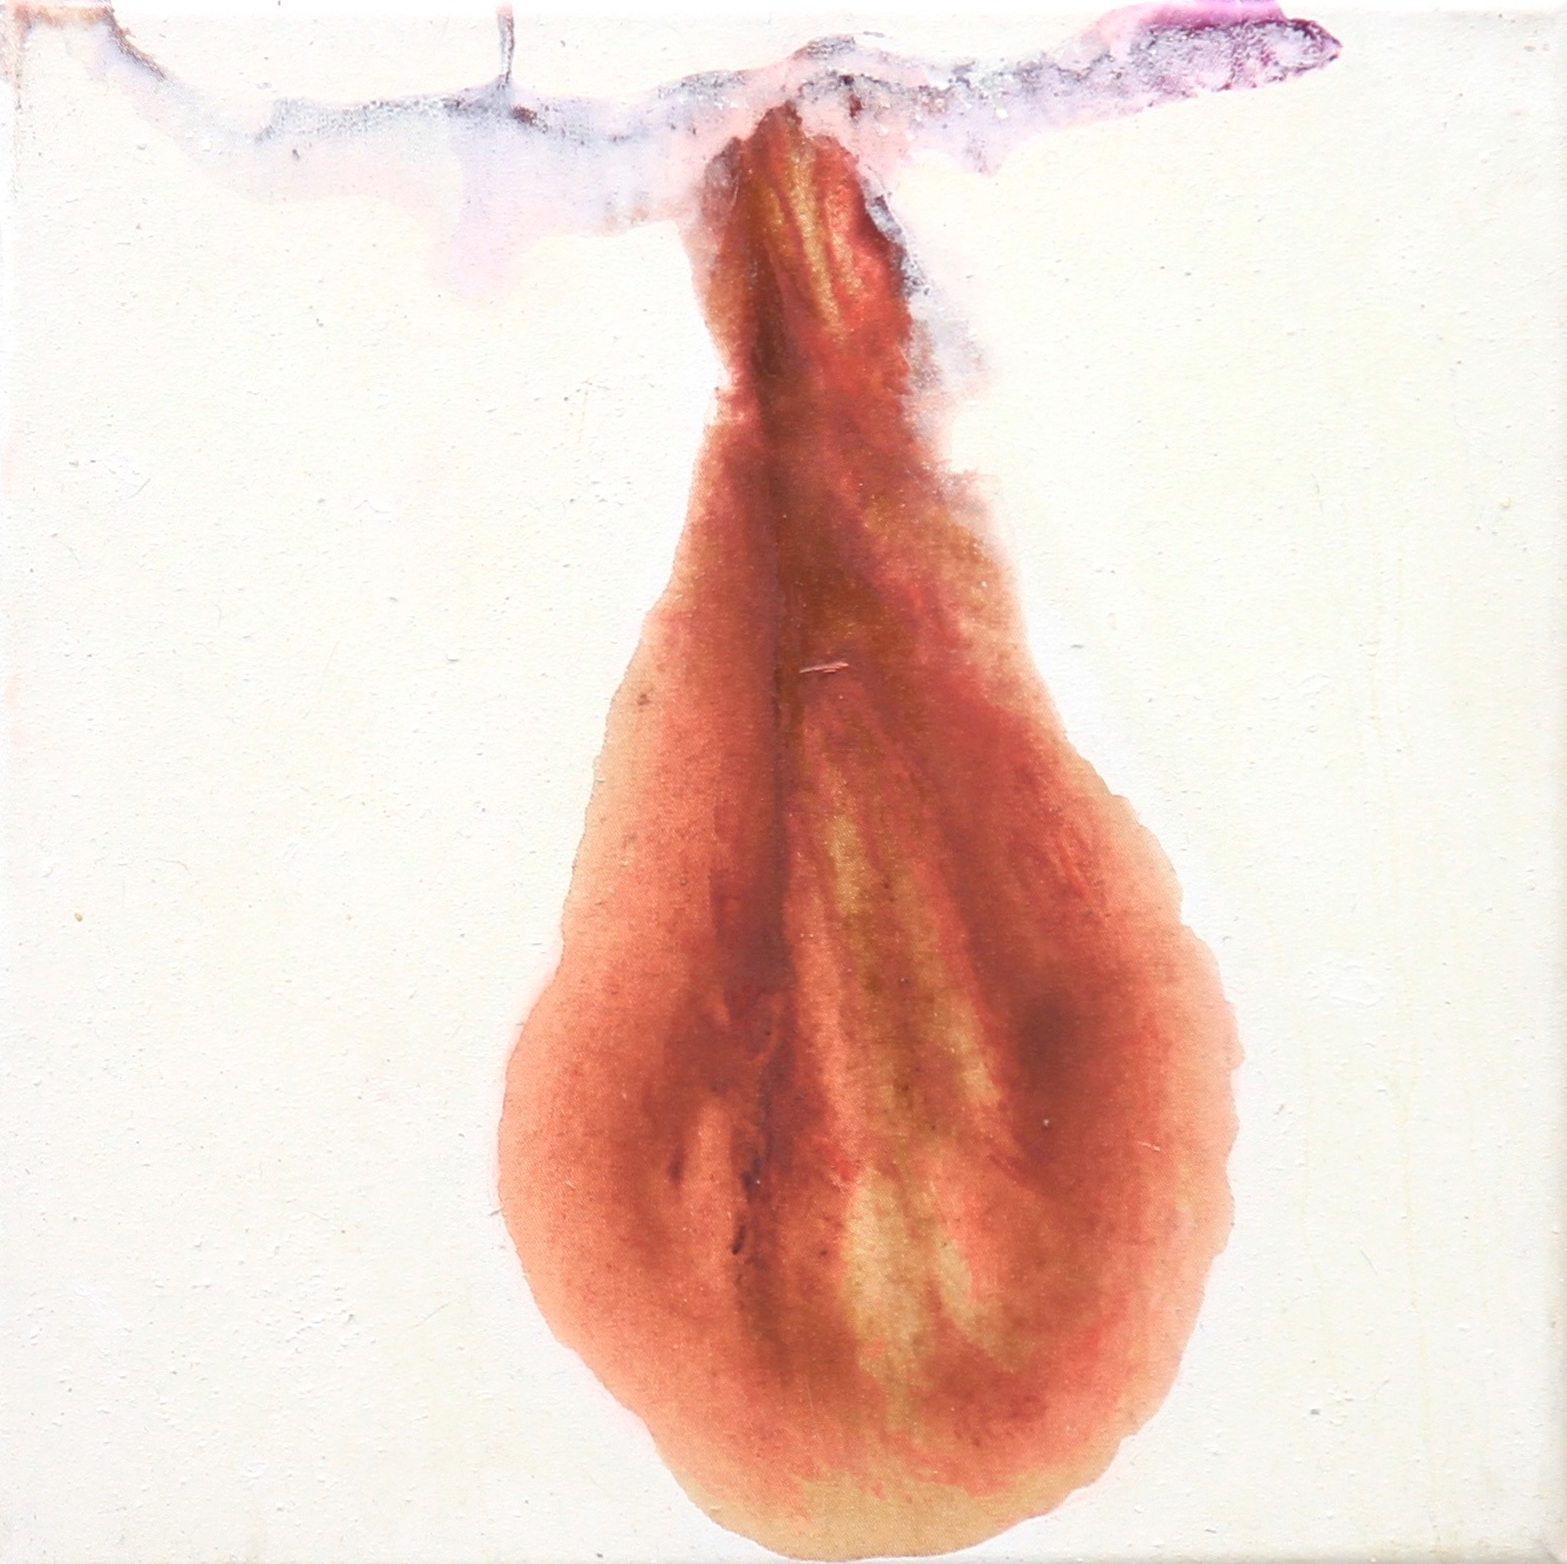 Fine Lines / 2012 / oil on canvas / 15.75 x 15.75 inches / 40 x 40 cm